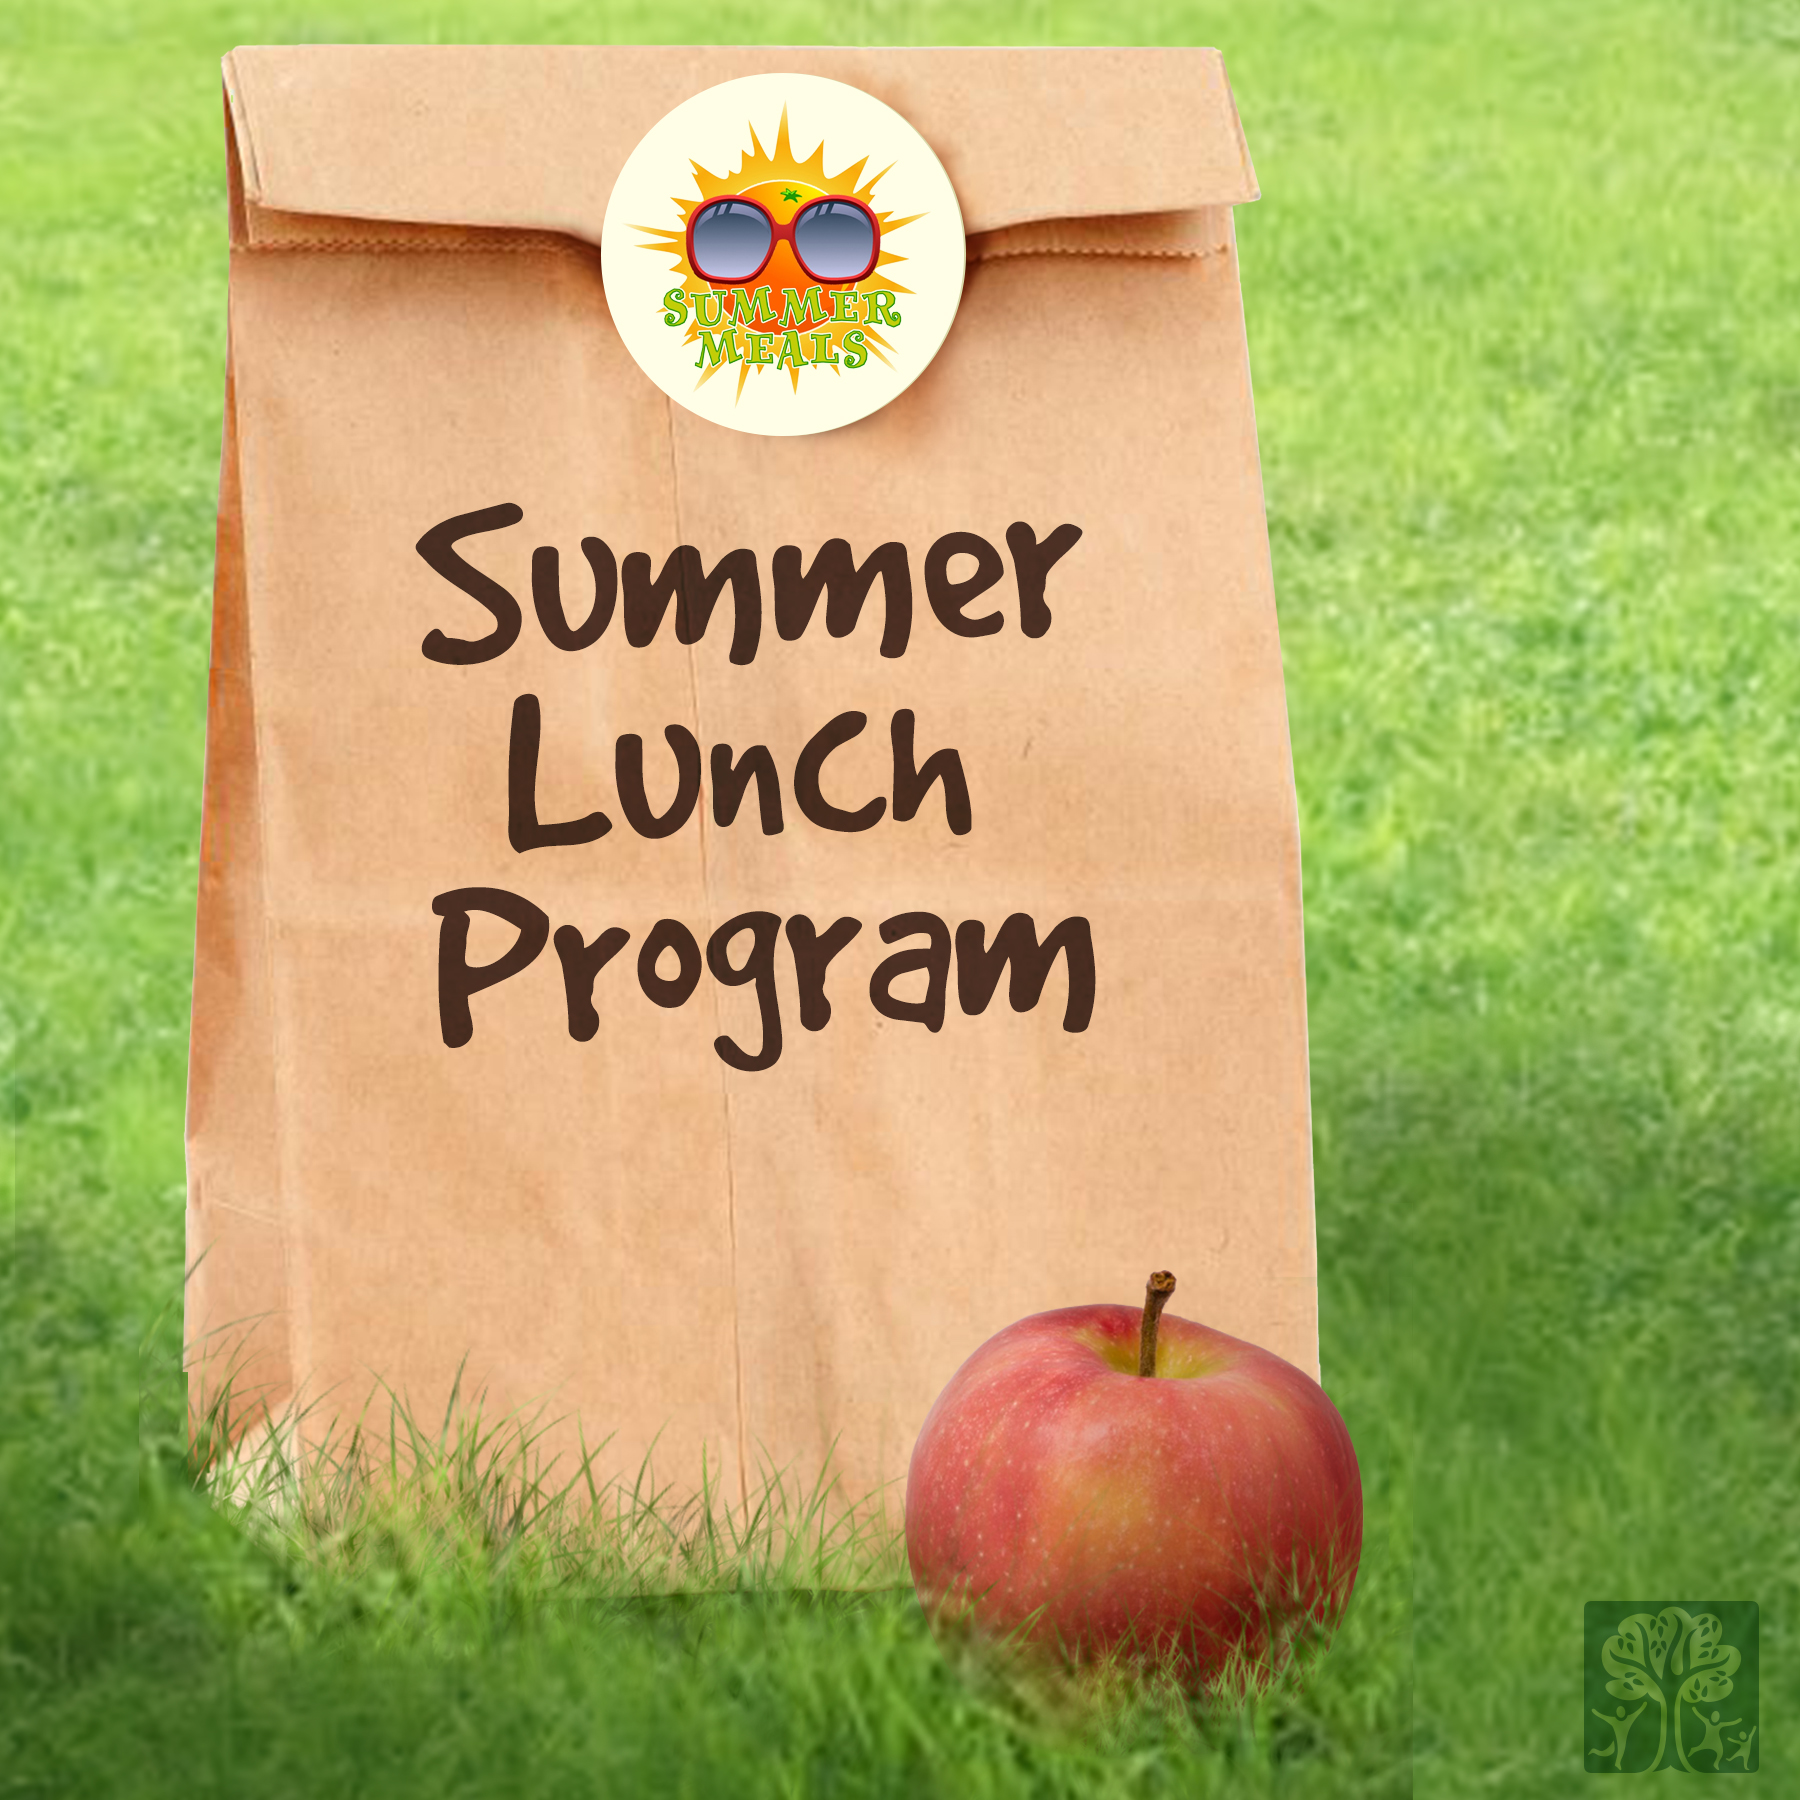 Summer Lunch Program hosted by Gurnee Park District and District 56 during the 2017 Summer